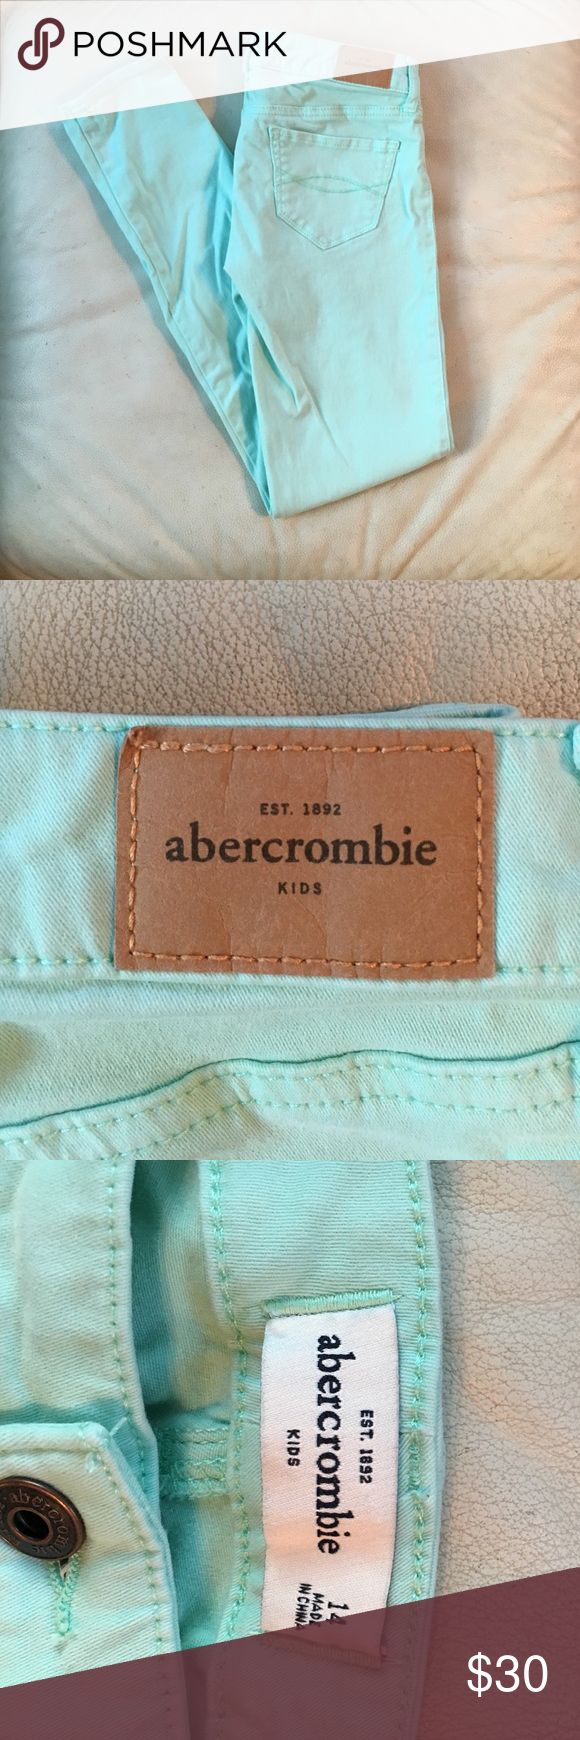 Mint Green Abercrombie Kids Pants In good condition, comment any questions! Looking to get $30/OBO! 💚 abercrombie kids Bottoms Jeans